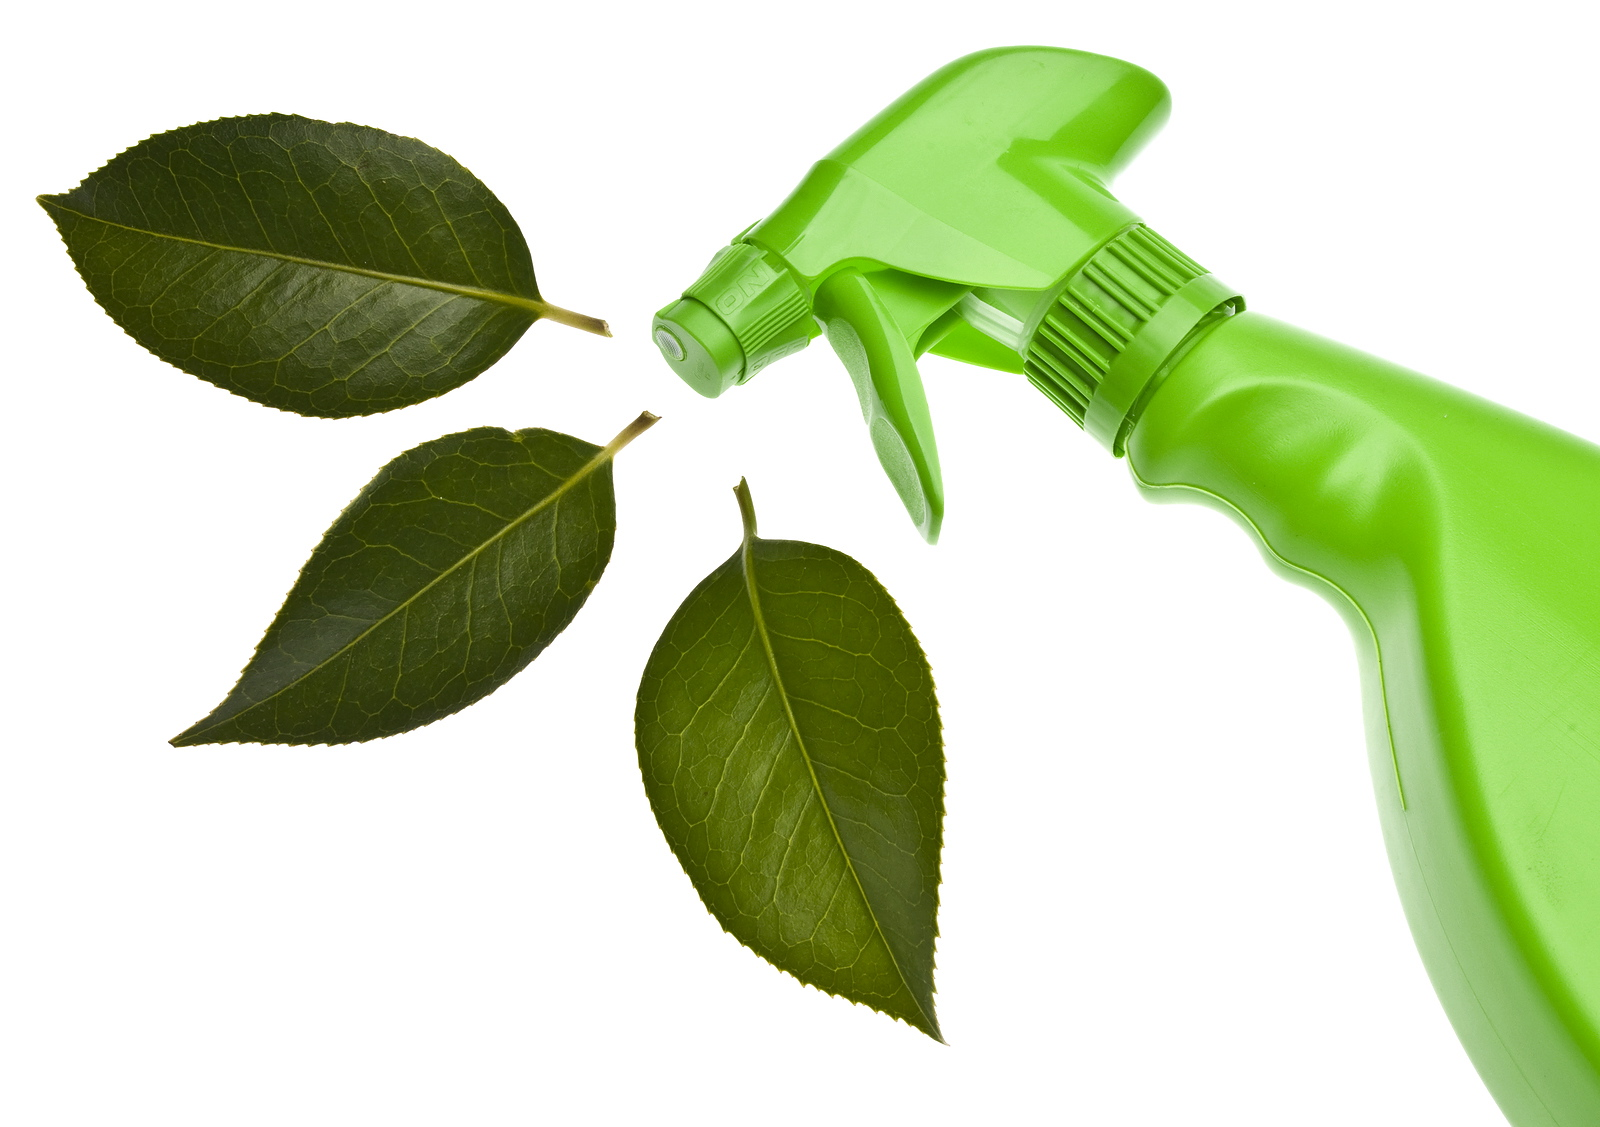 Green Cleaning